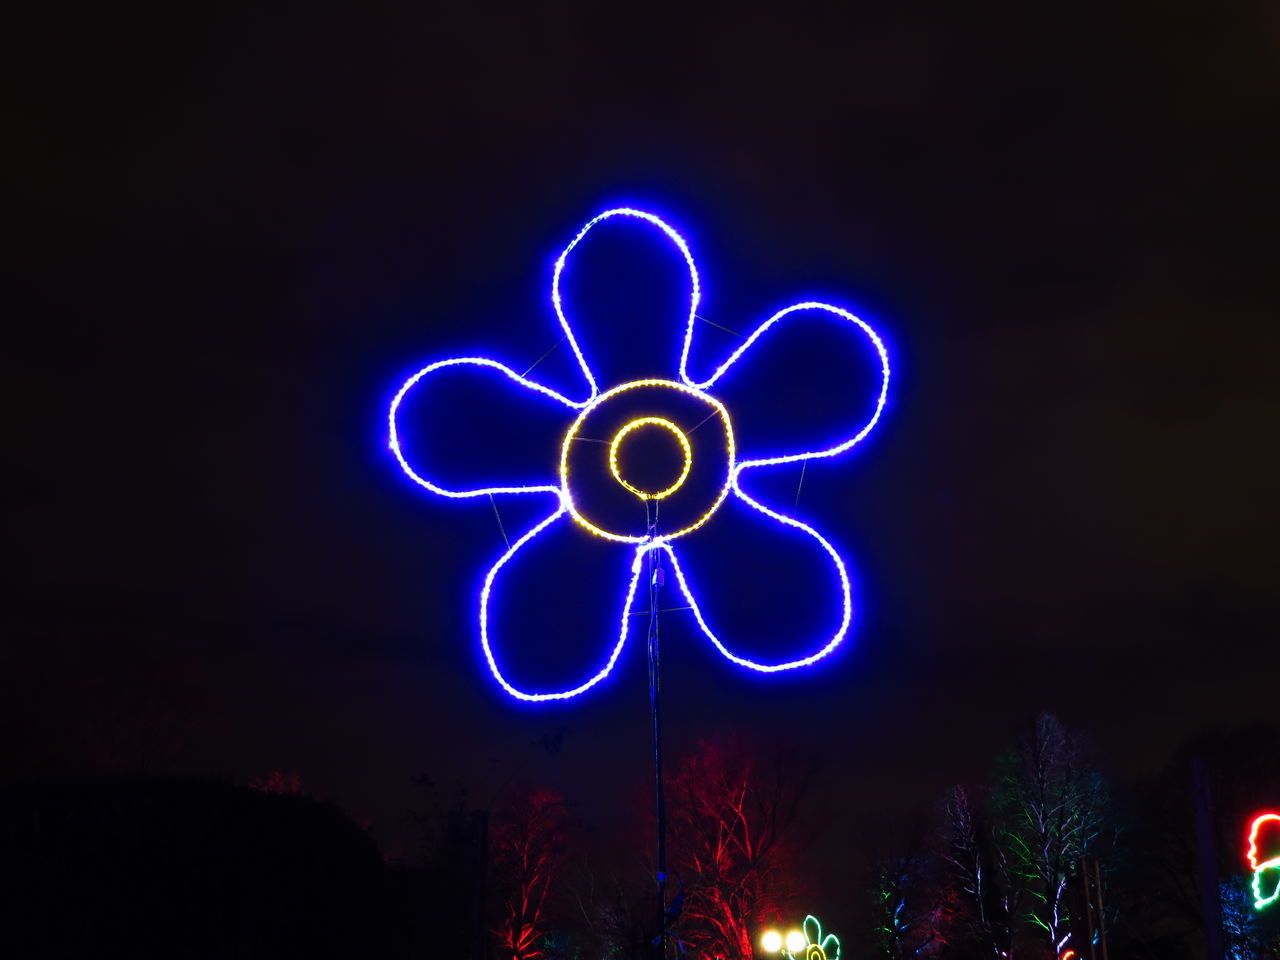 Abstract Flower Flower Shape Glow Glowing Glowinthedark Ideas Illuminated Illumination Lightpainting Neon Night Painted Flower Shape Symbol